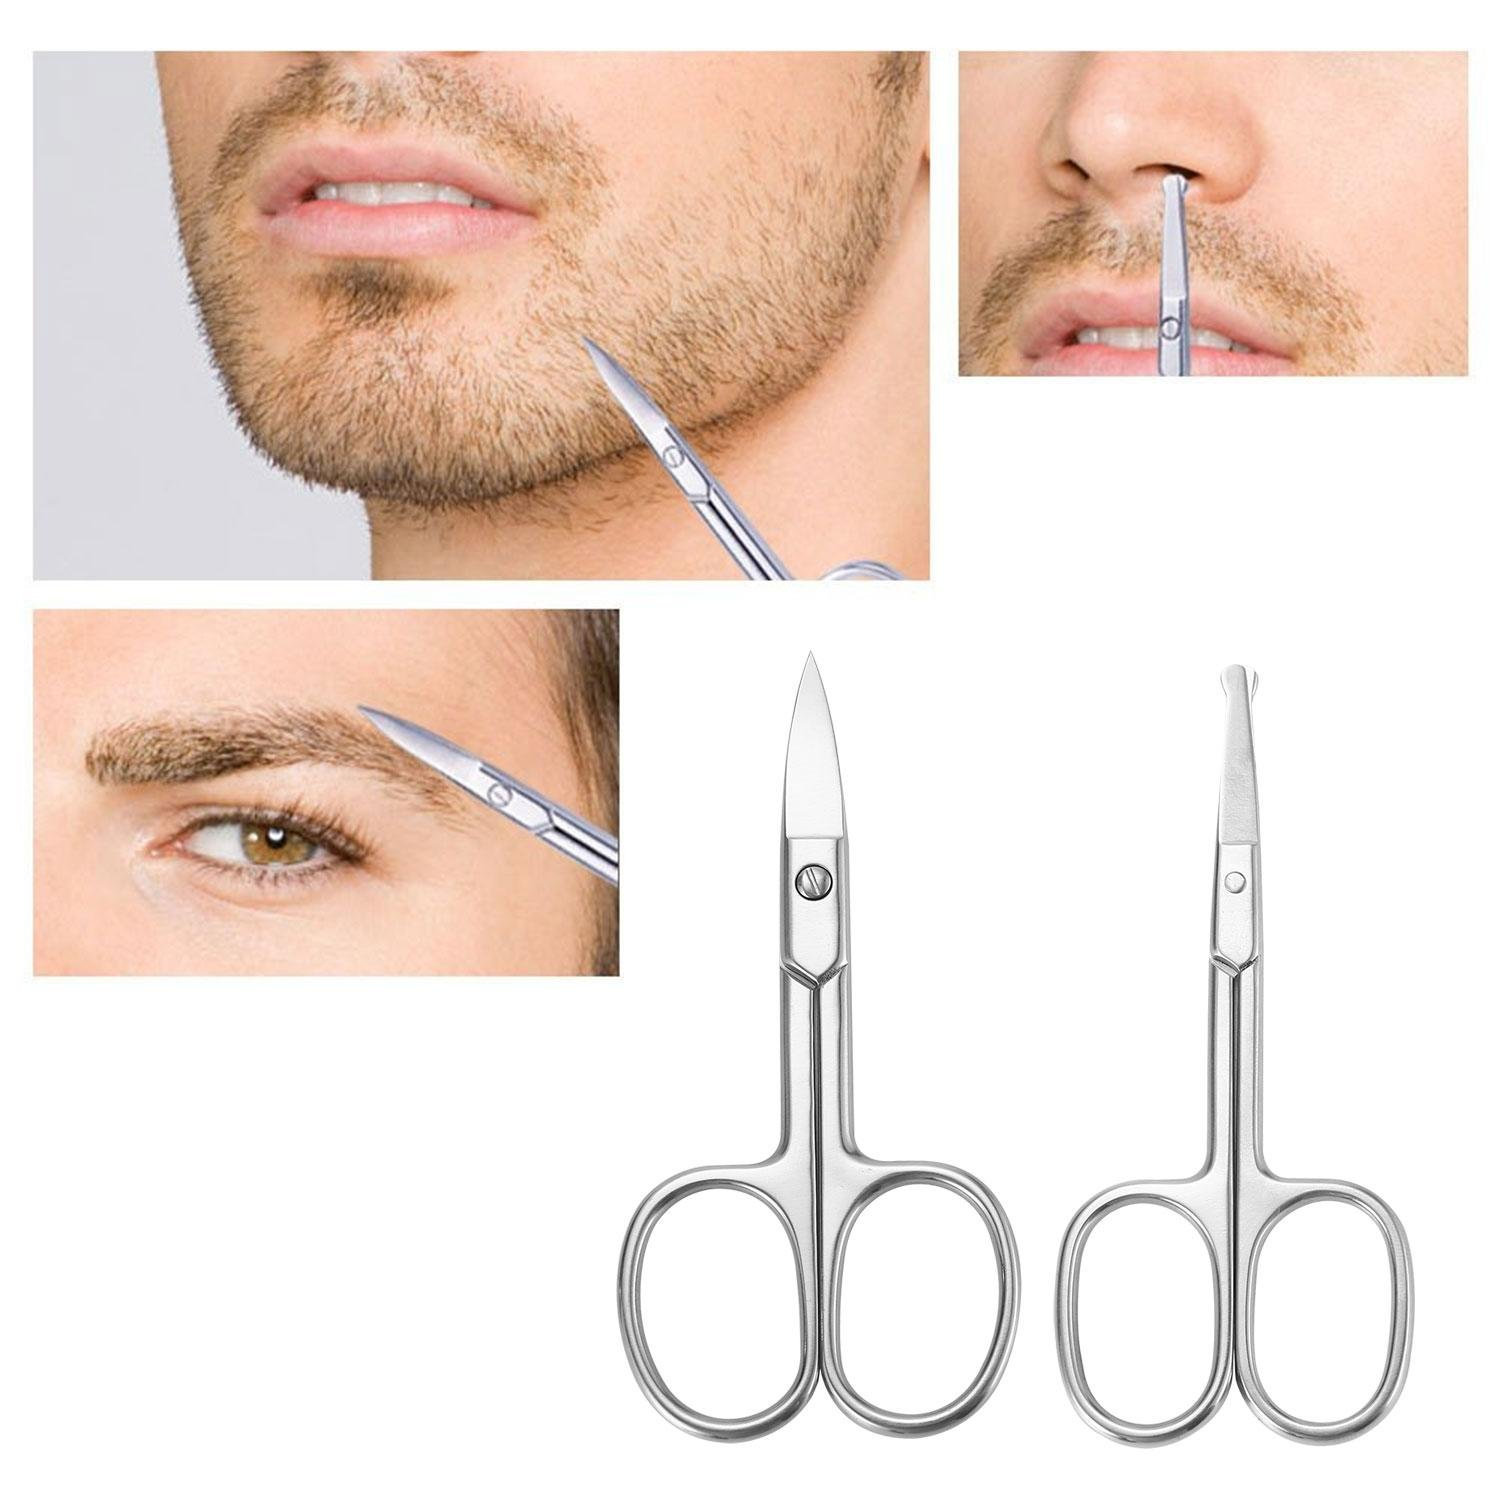 Nose Hair Scissors Beard Eyebrow Trimmer Mustache Scissors Stainless Steel Set with Storage Box niceeshop